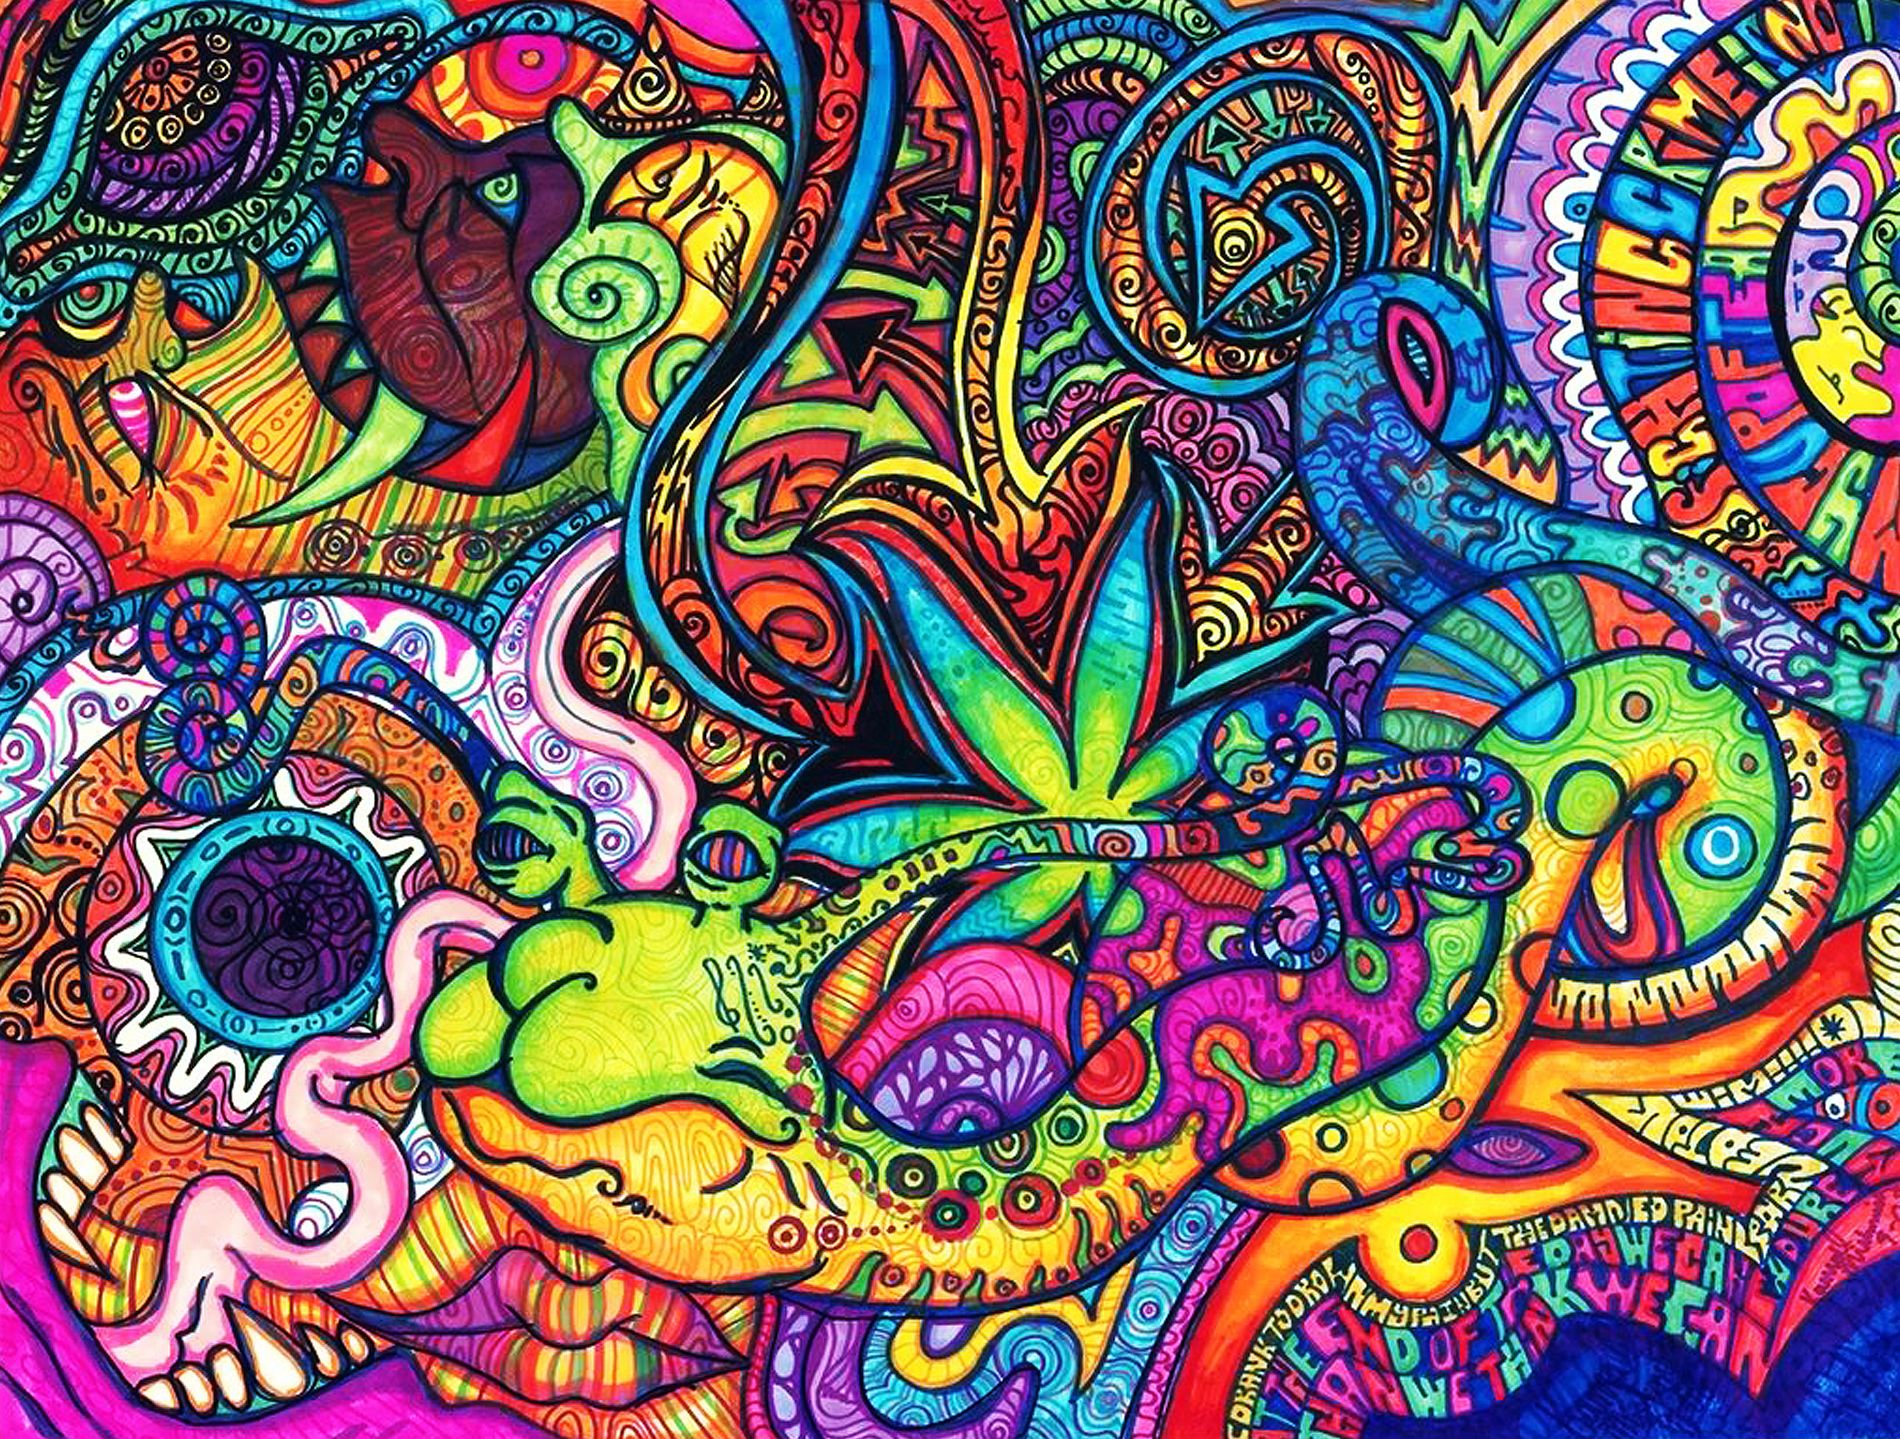 537 Psychedelic HD Wallpapers | Backgrounds - Wallpaper Abyss